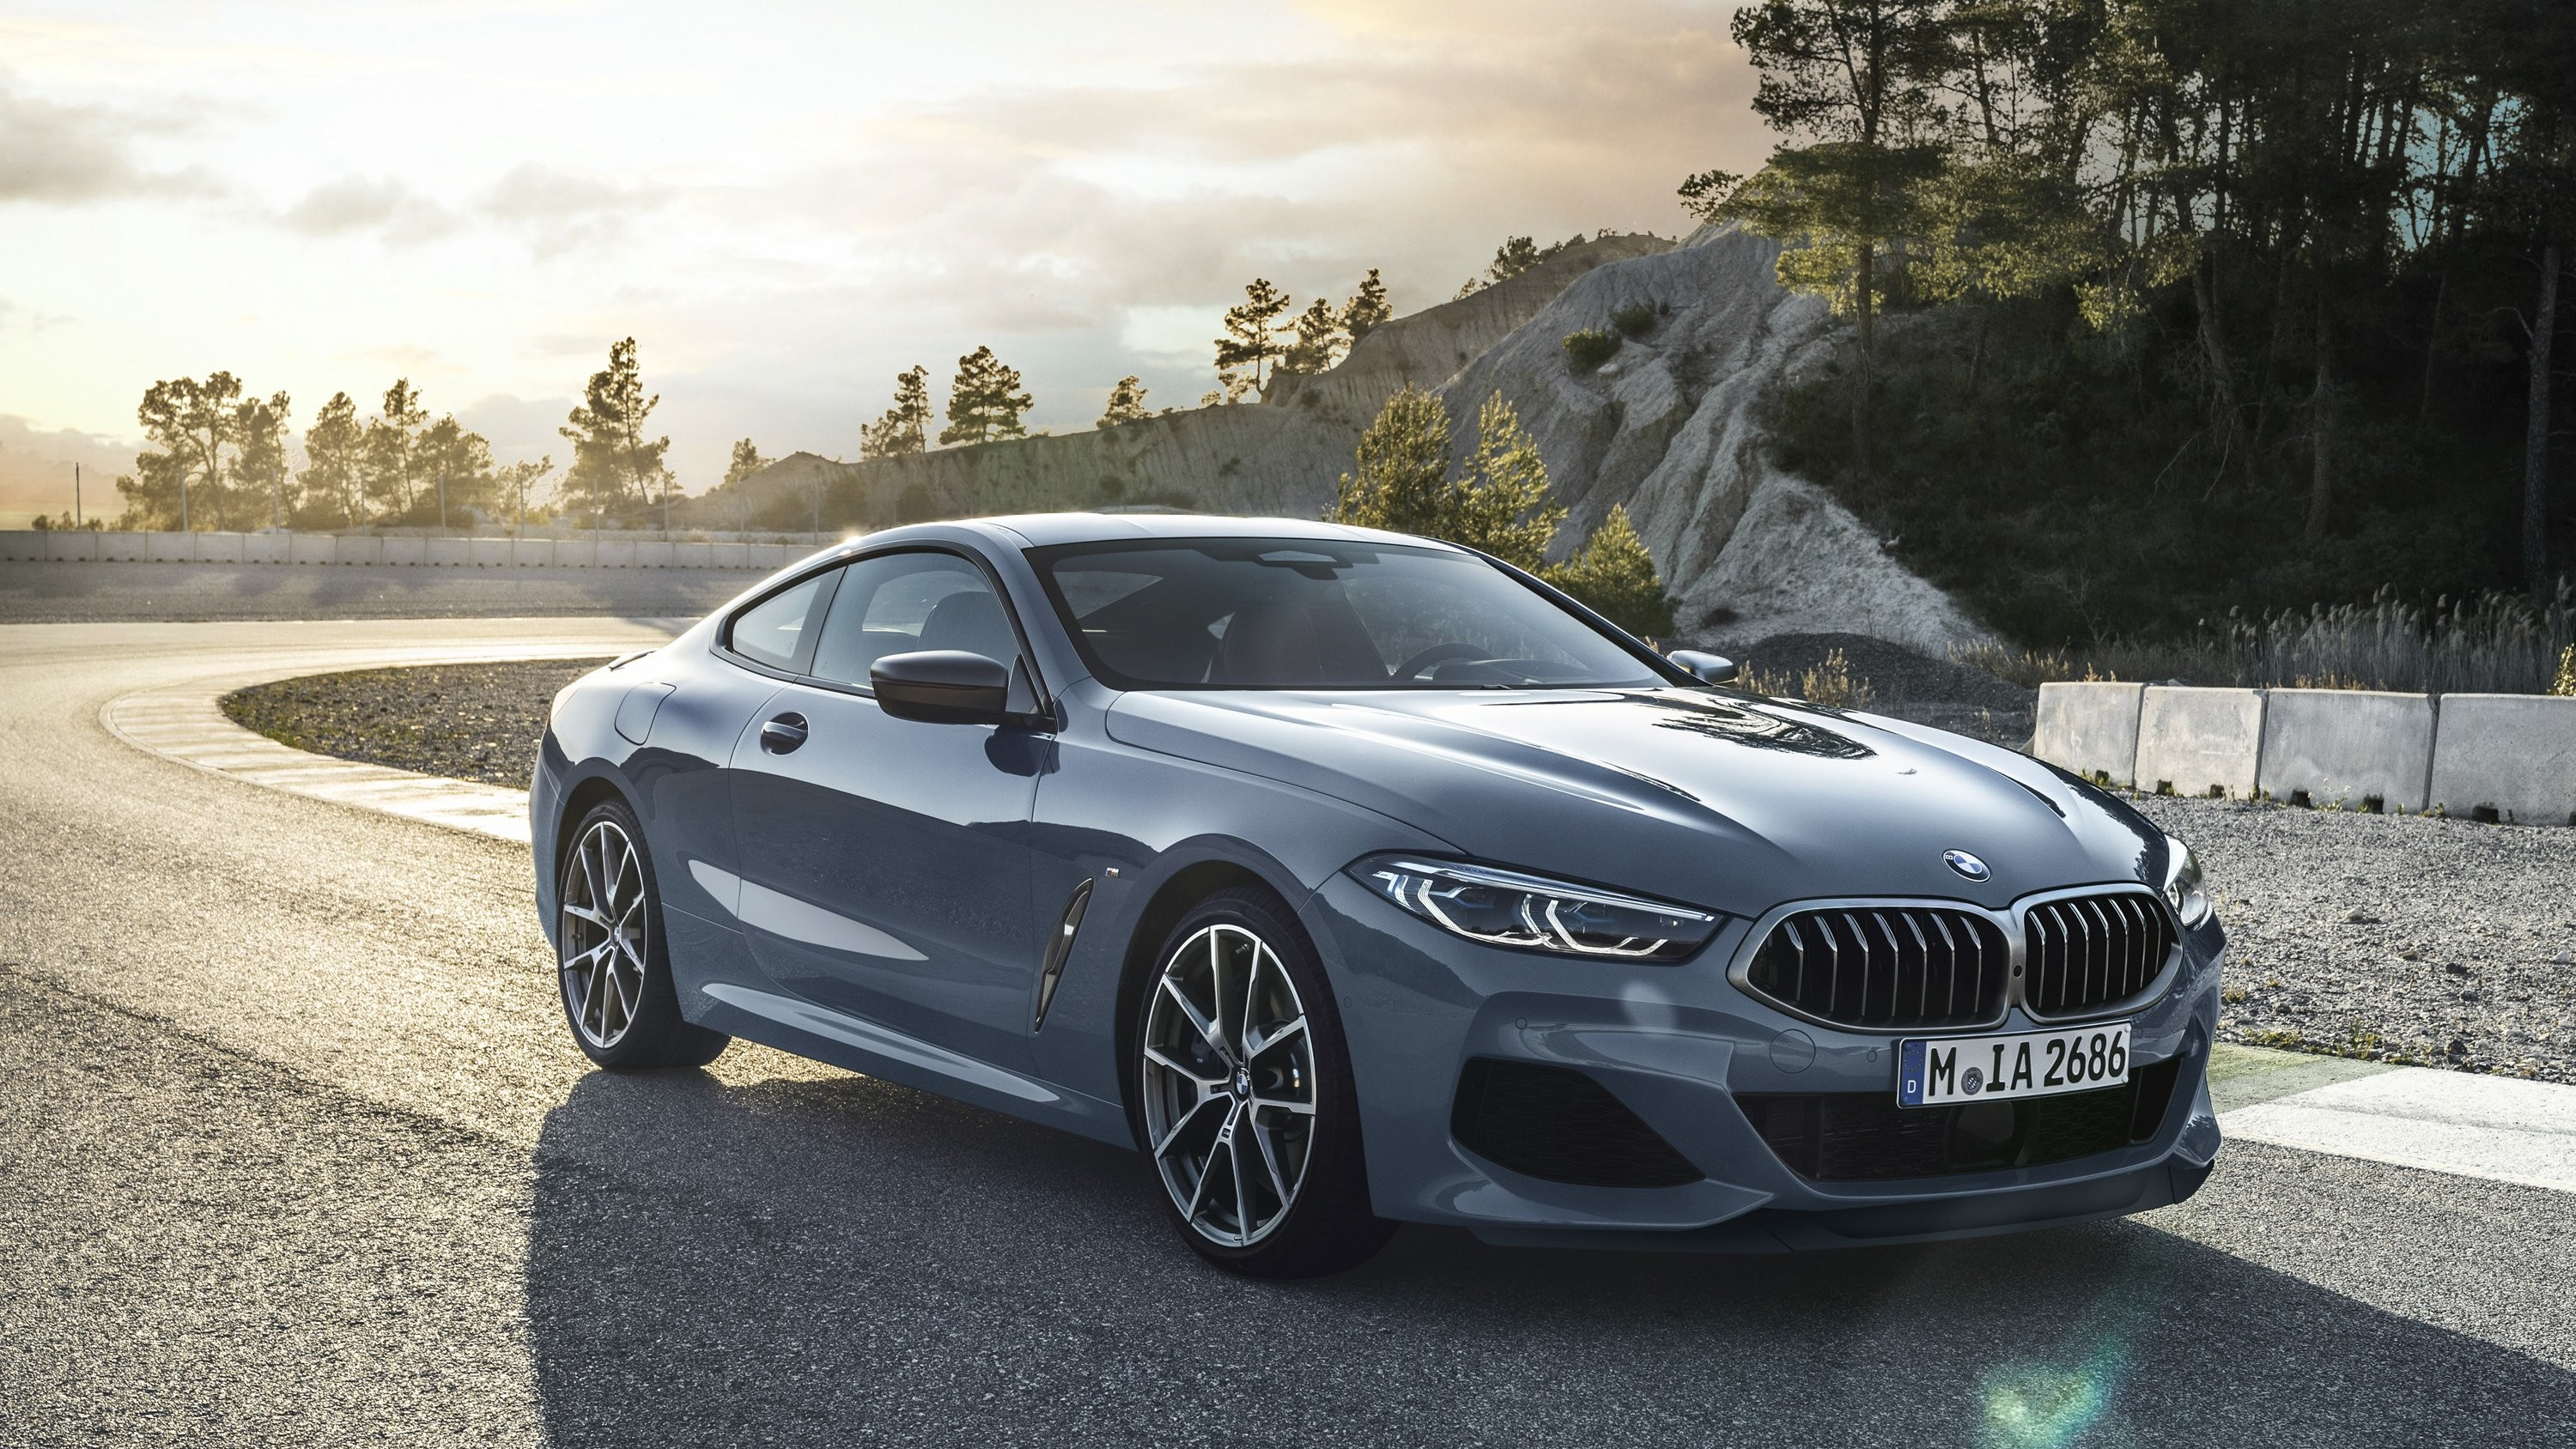 Res: 3000x1688, 2019 BMW 8 Series Pictures, Photos, Wallpapers.